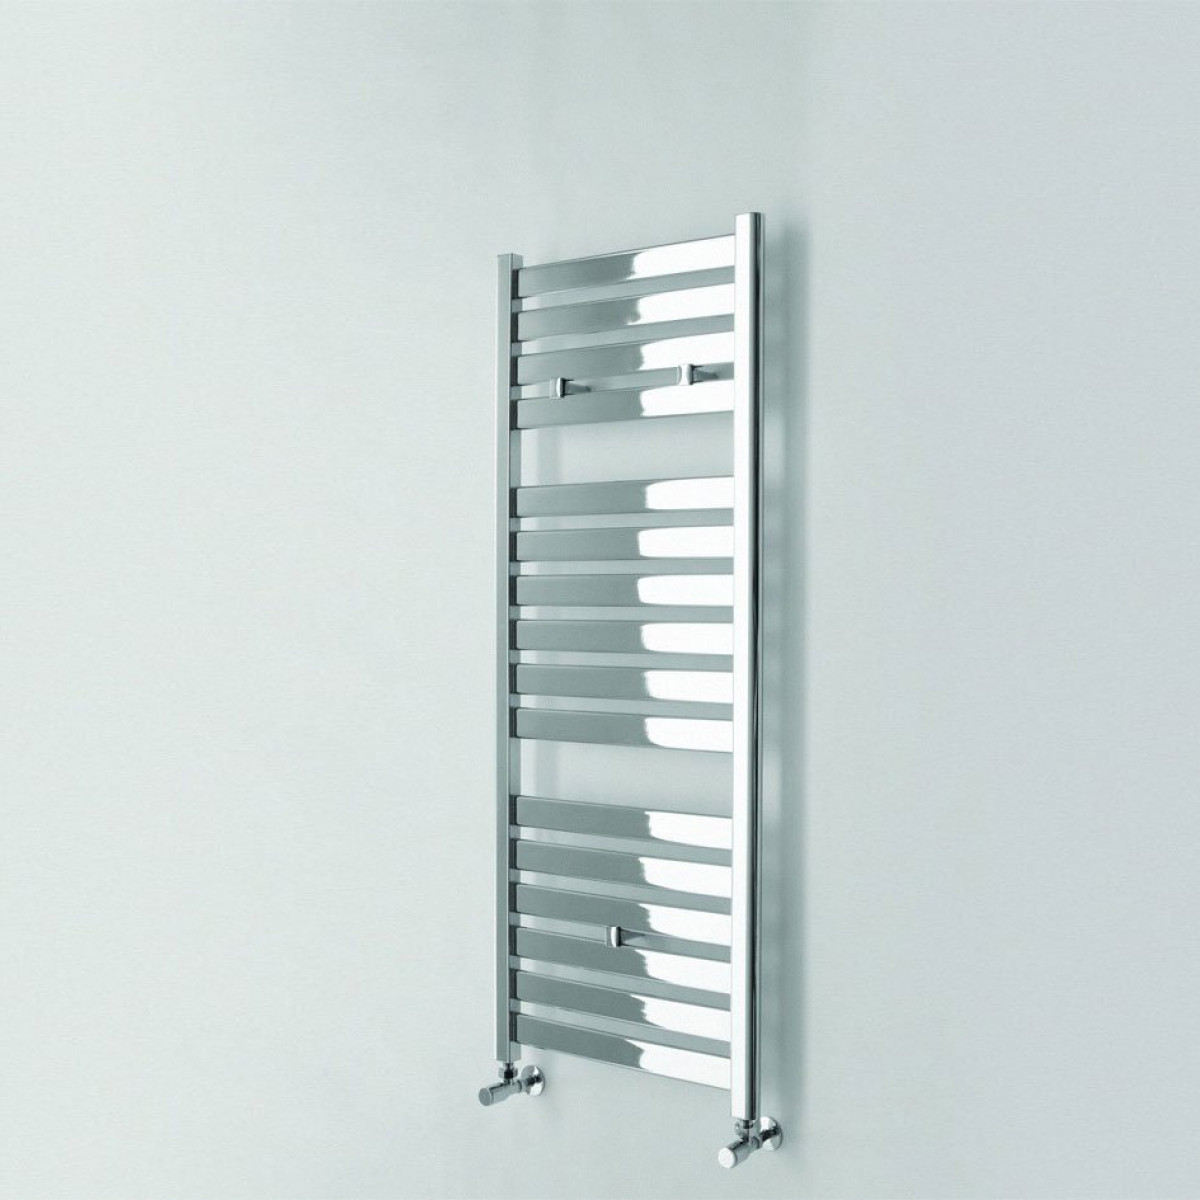 Ideal Essential, Capricorn Straight Towel Warmers, Chrome Finish ...